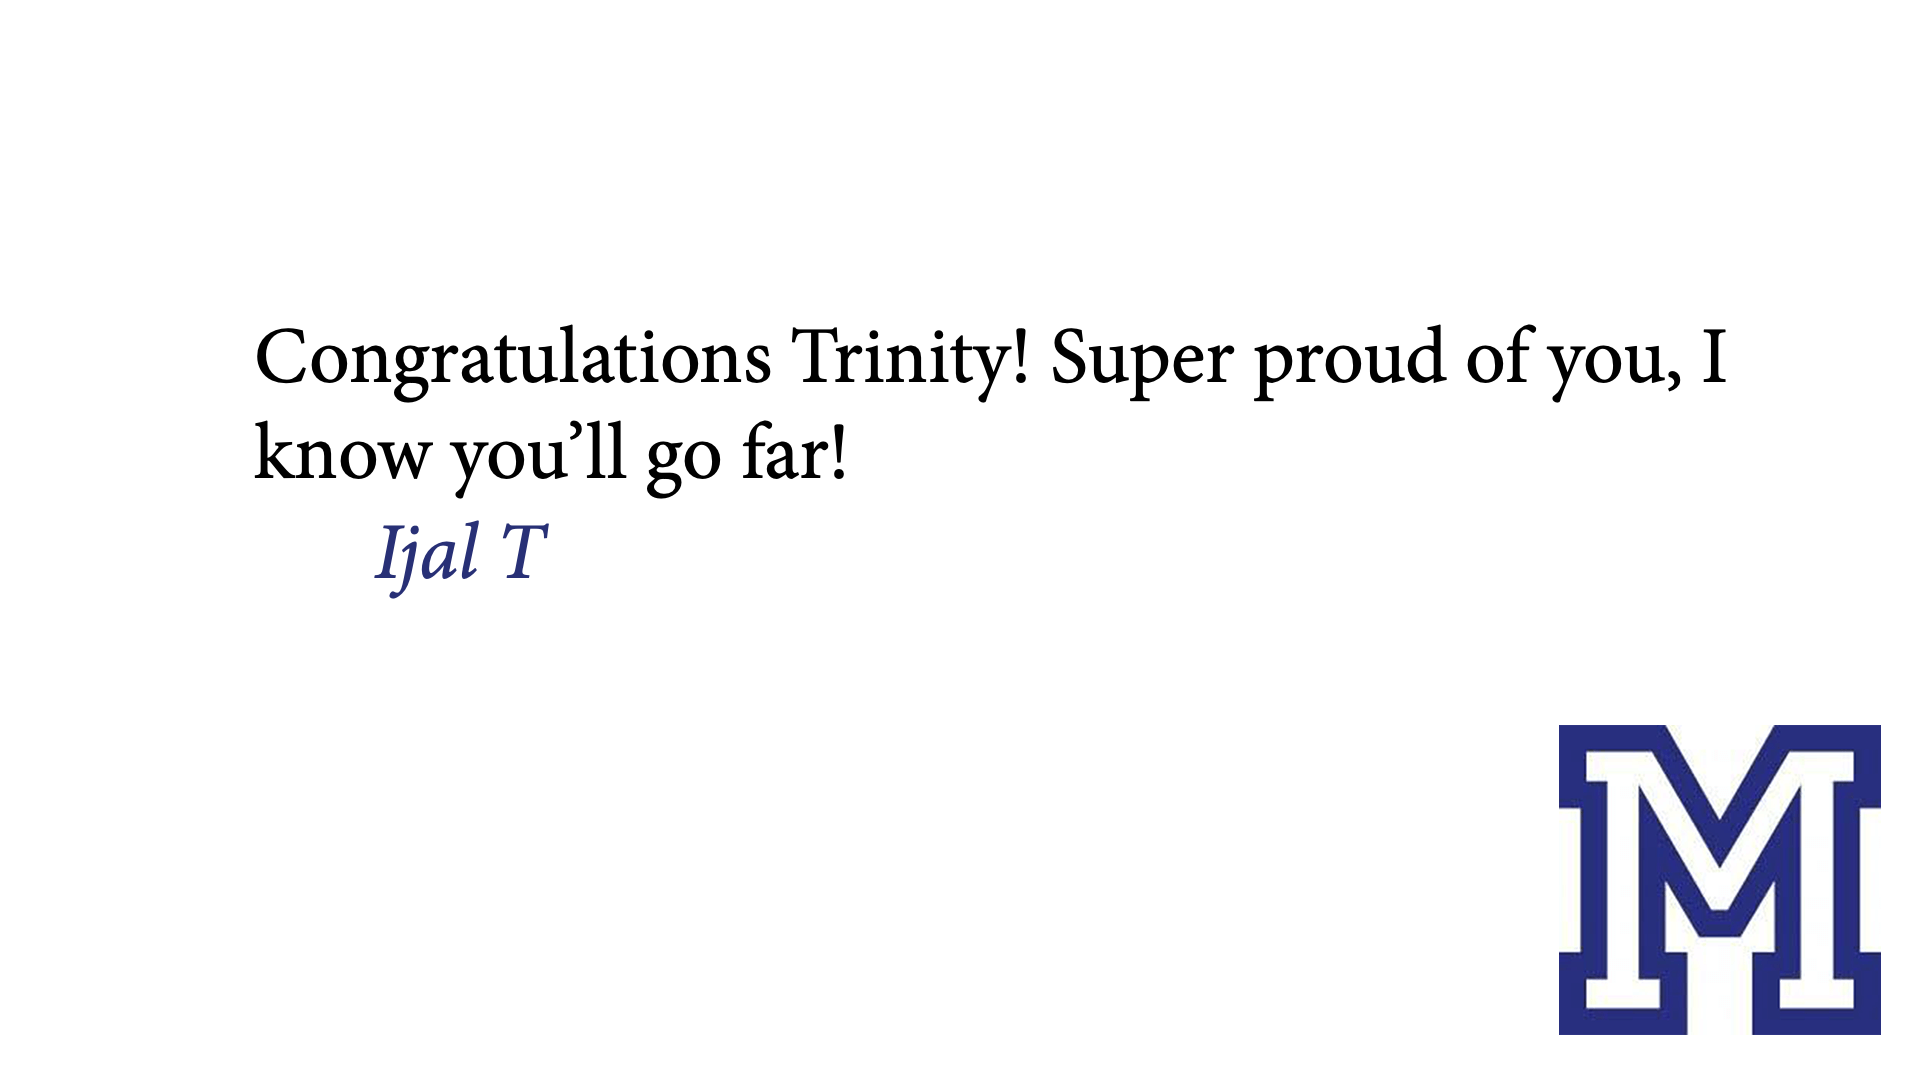 tbi_trinity-thompson_3941.png